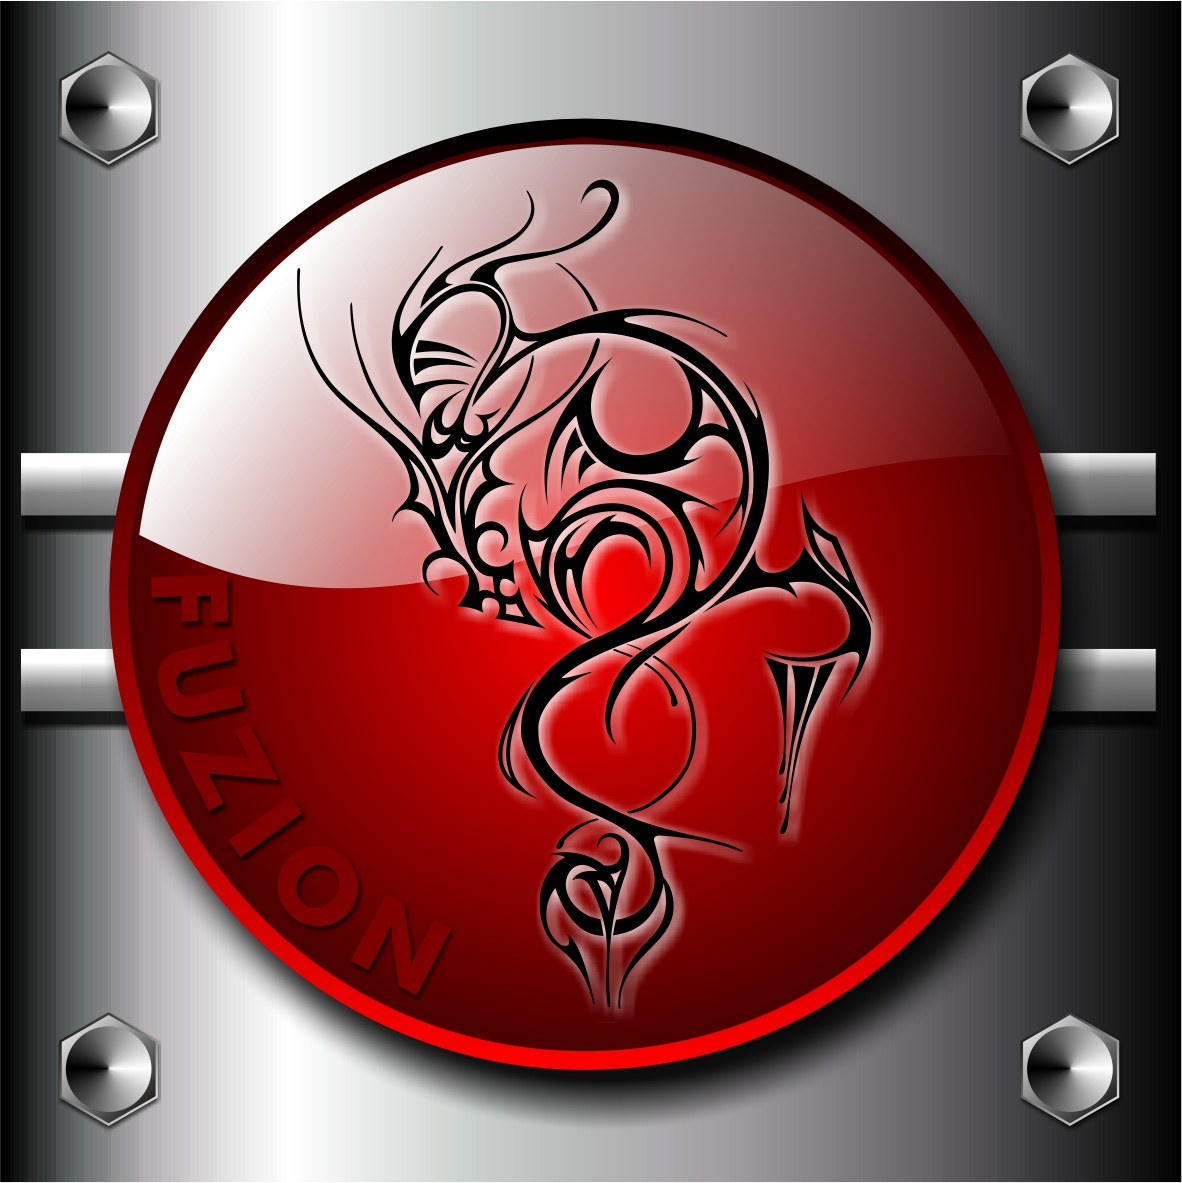 disc, dragon, metal, graphics, designs, silver, logos